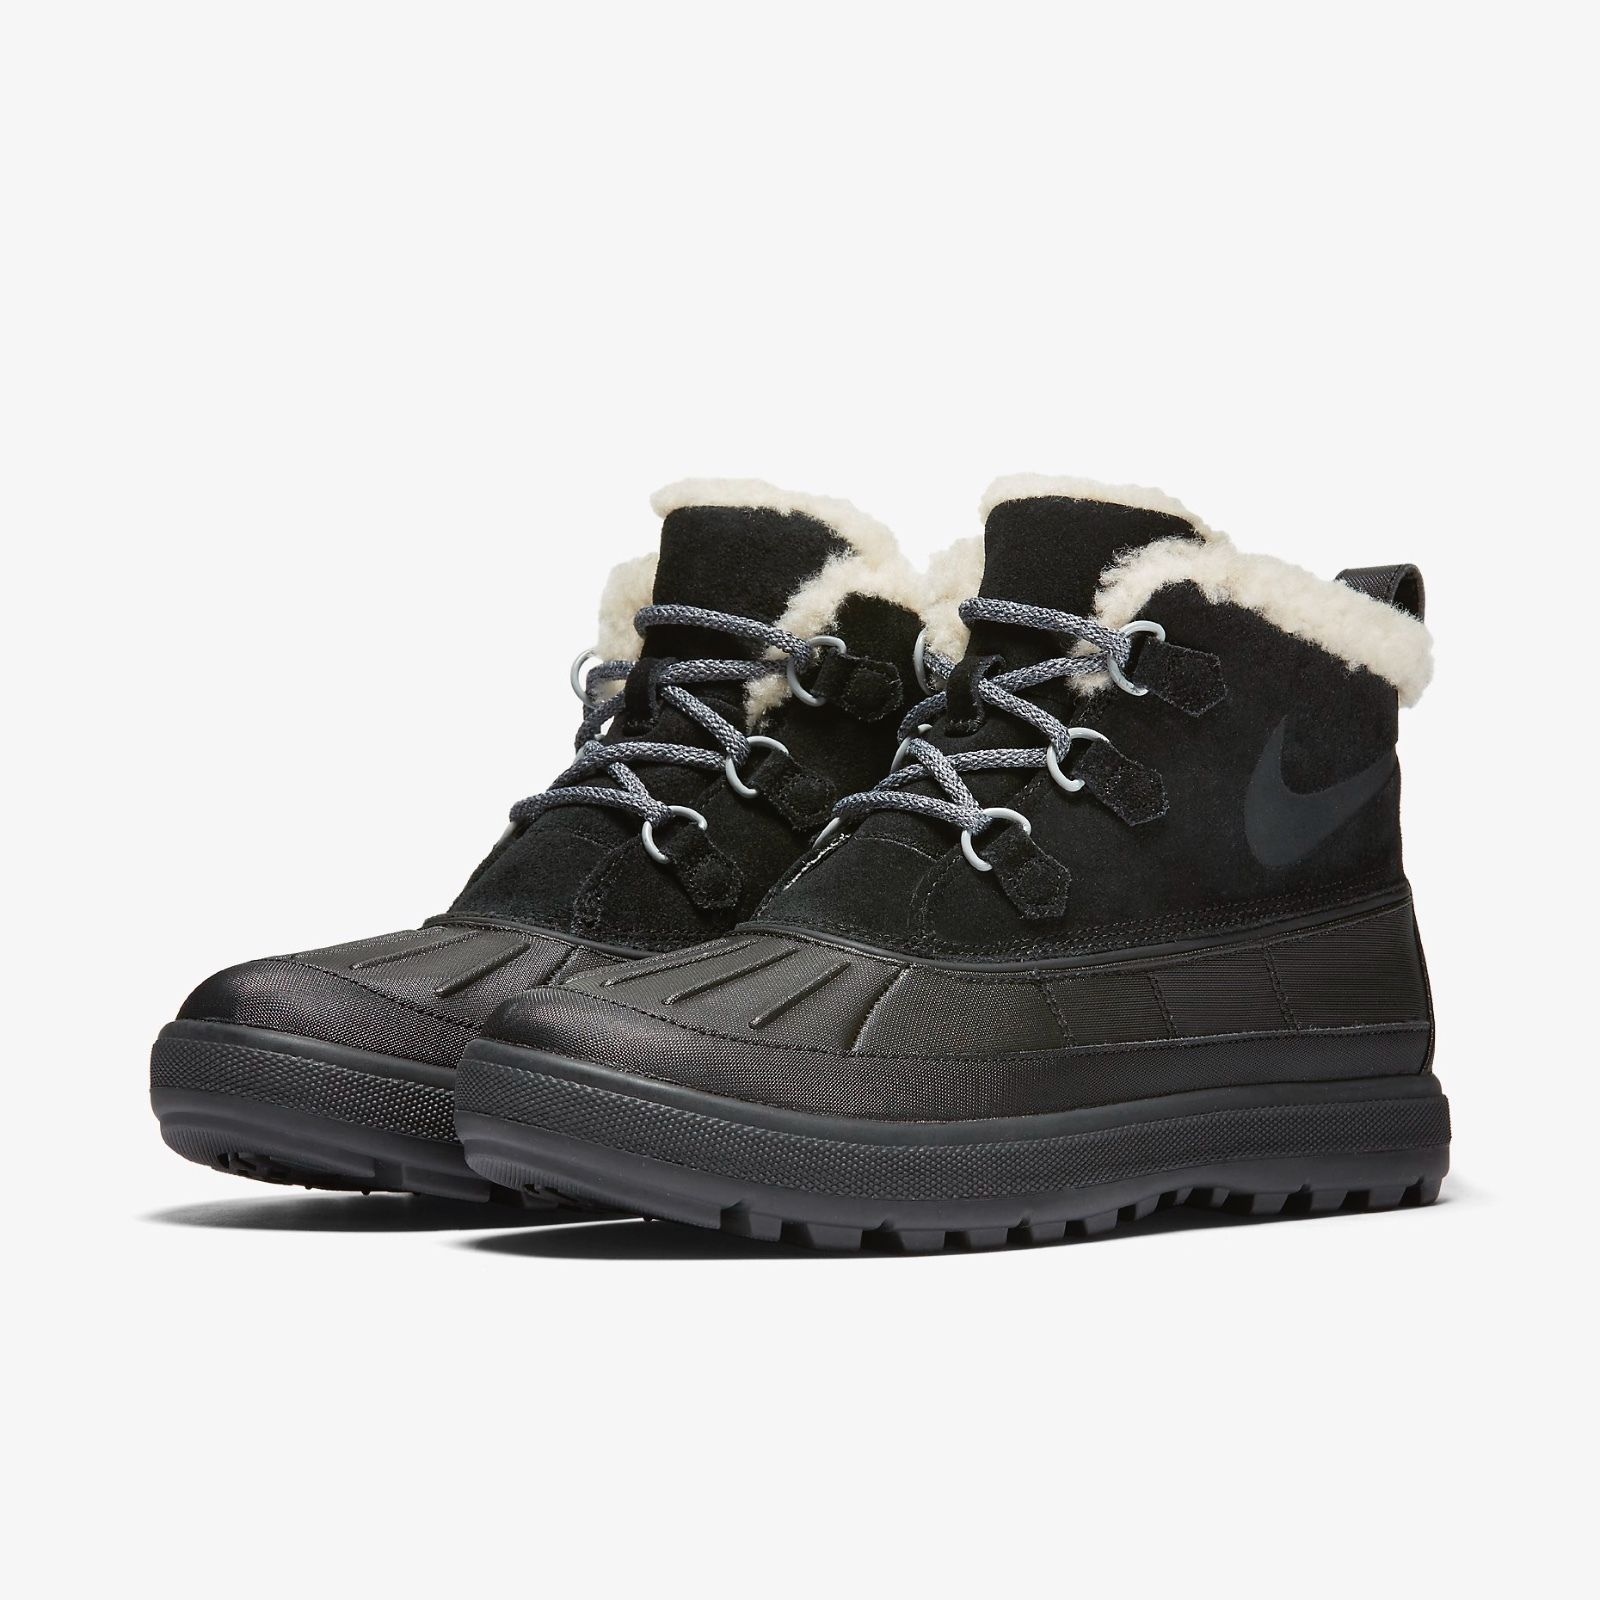 19d9171ac53264 nike winter boots